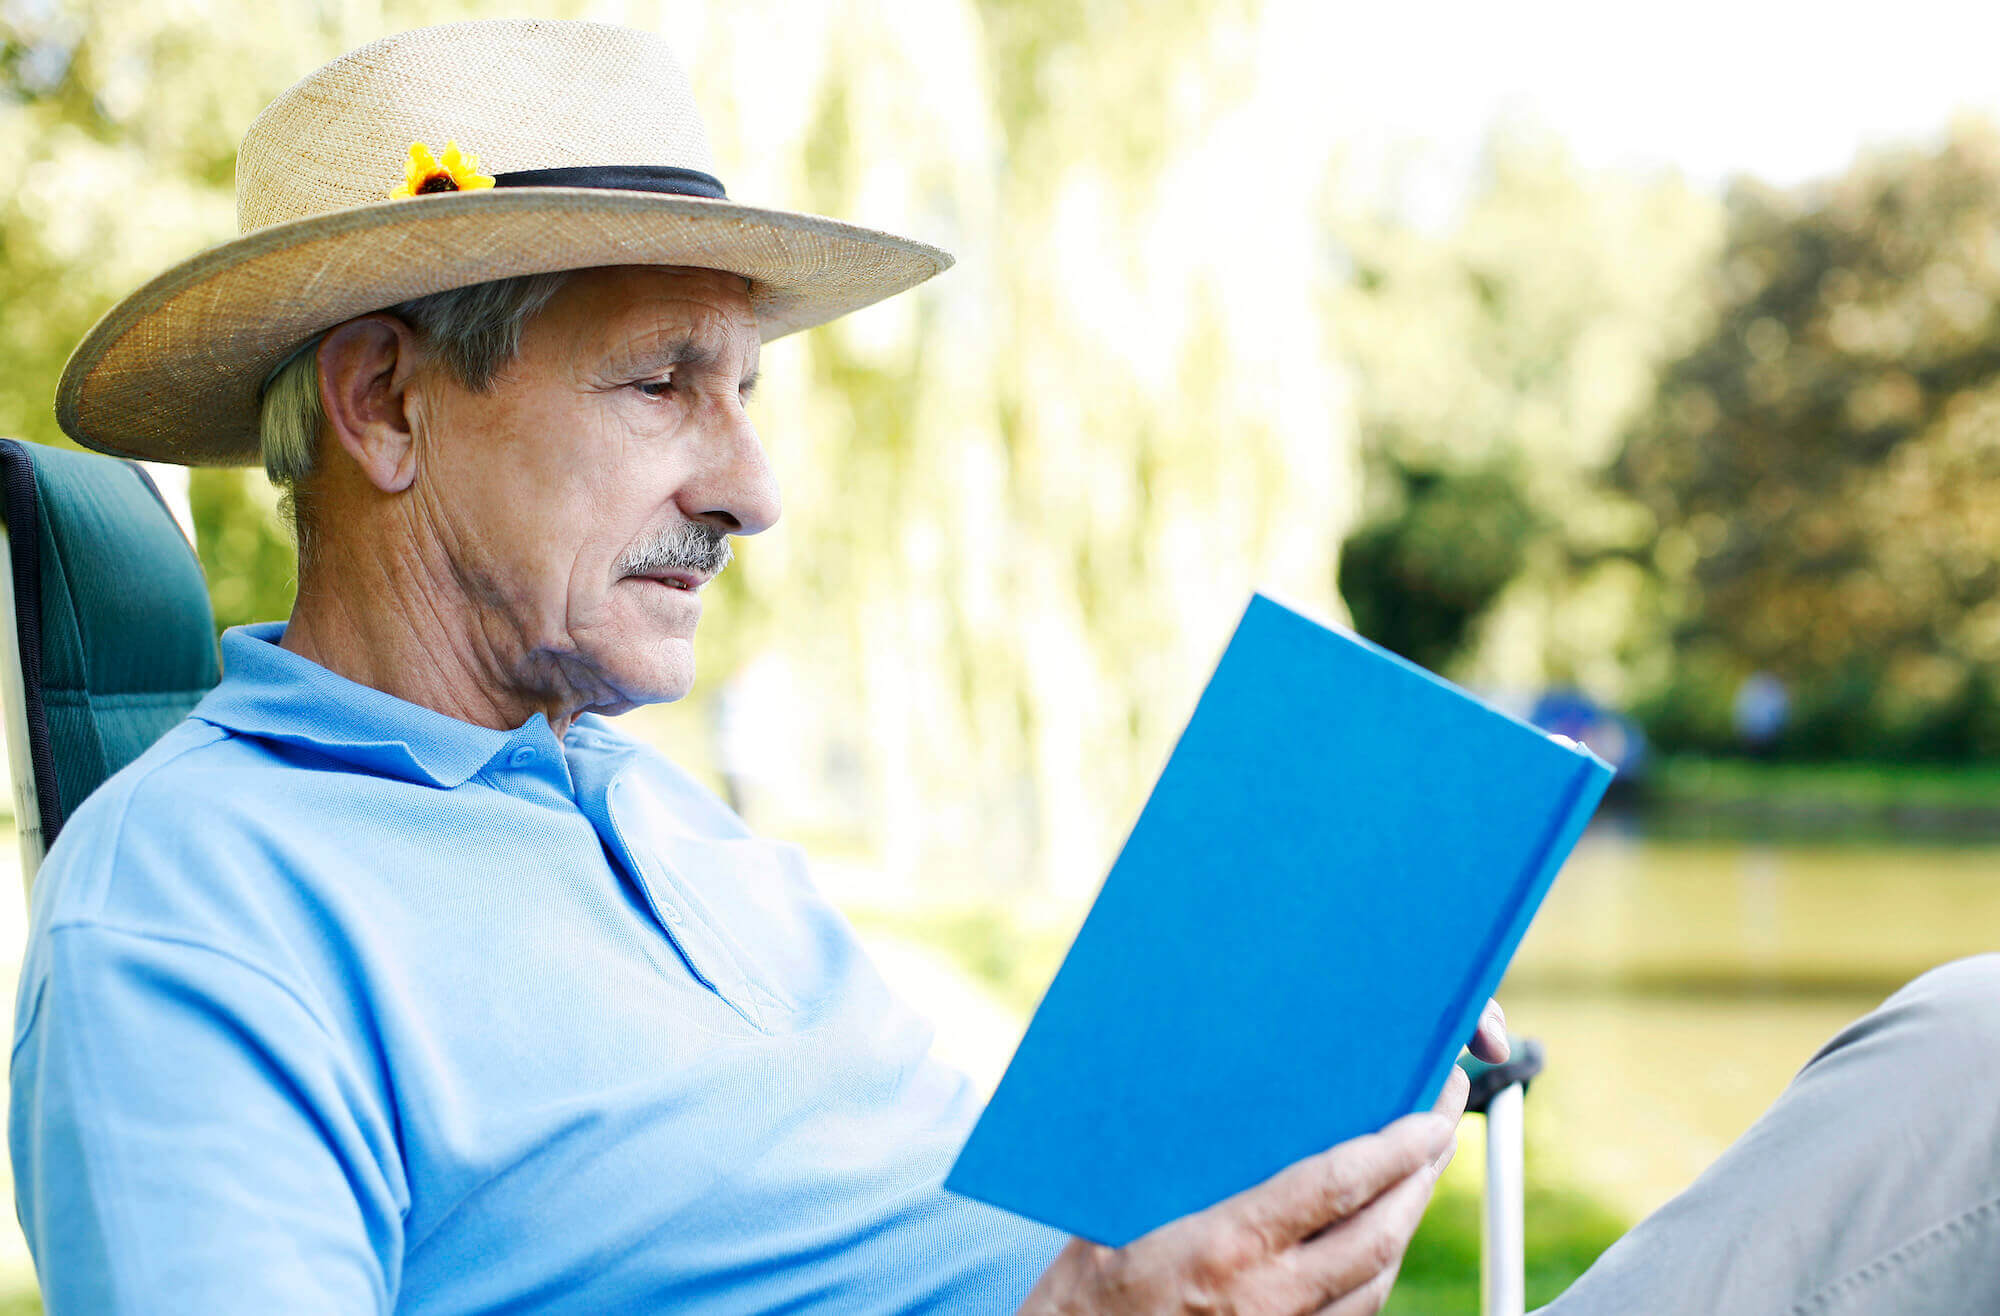 Top 5 Memory Care Activities To Practice With Seniors